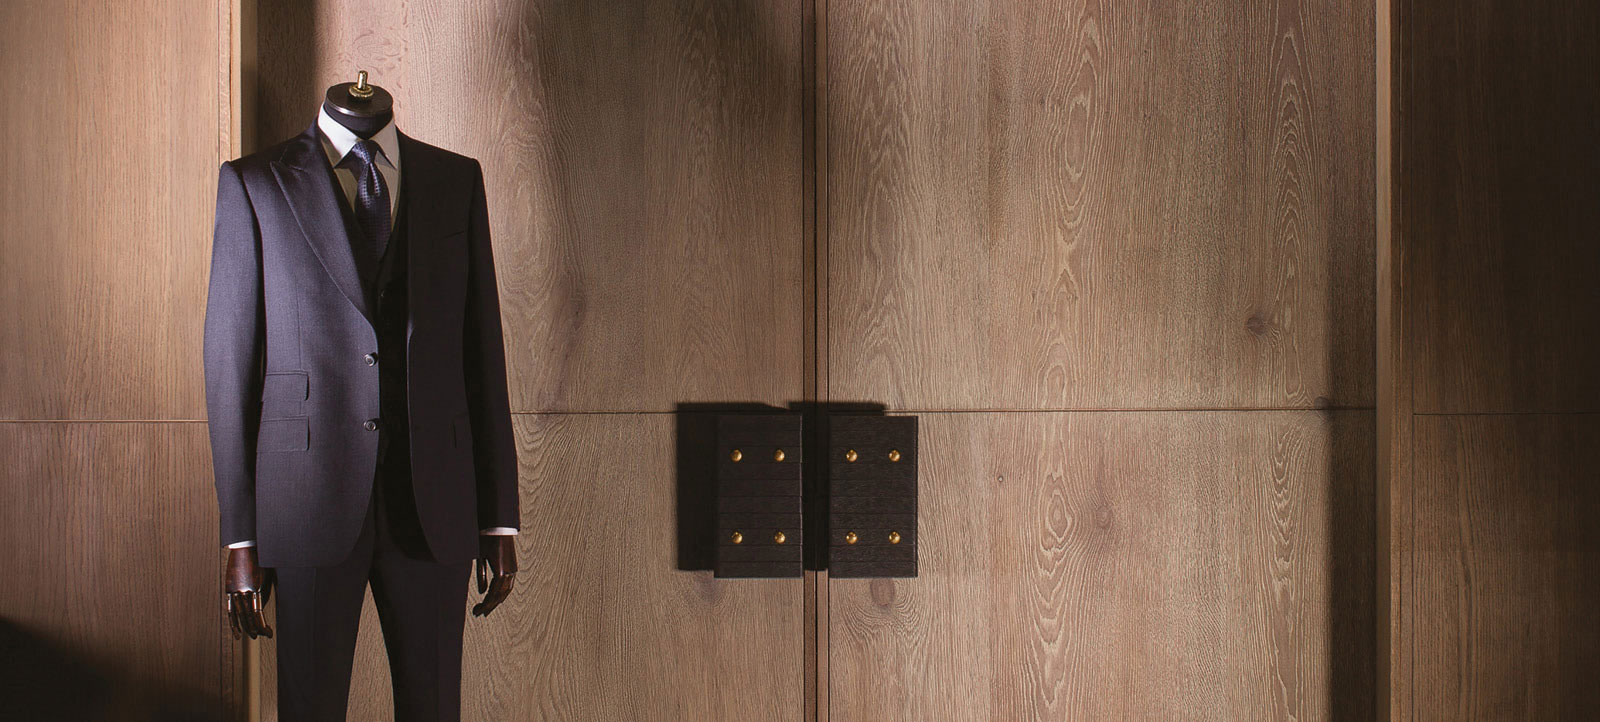 Made to Measure - About